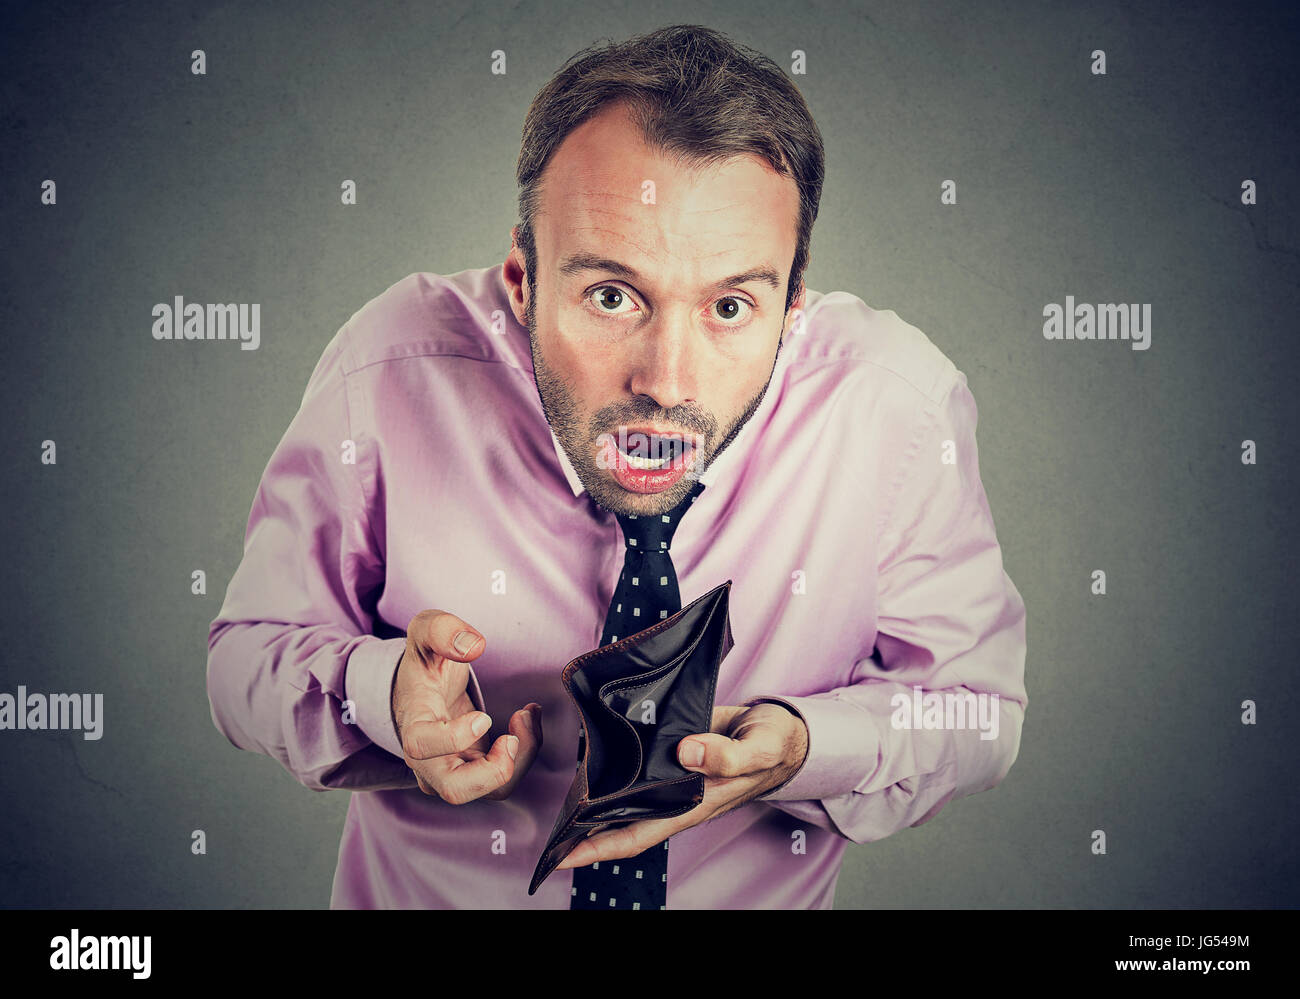 Man with no money. Businessman holding showing empty wallet - Stock Image